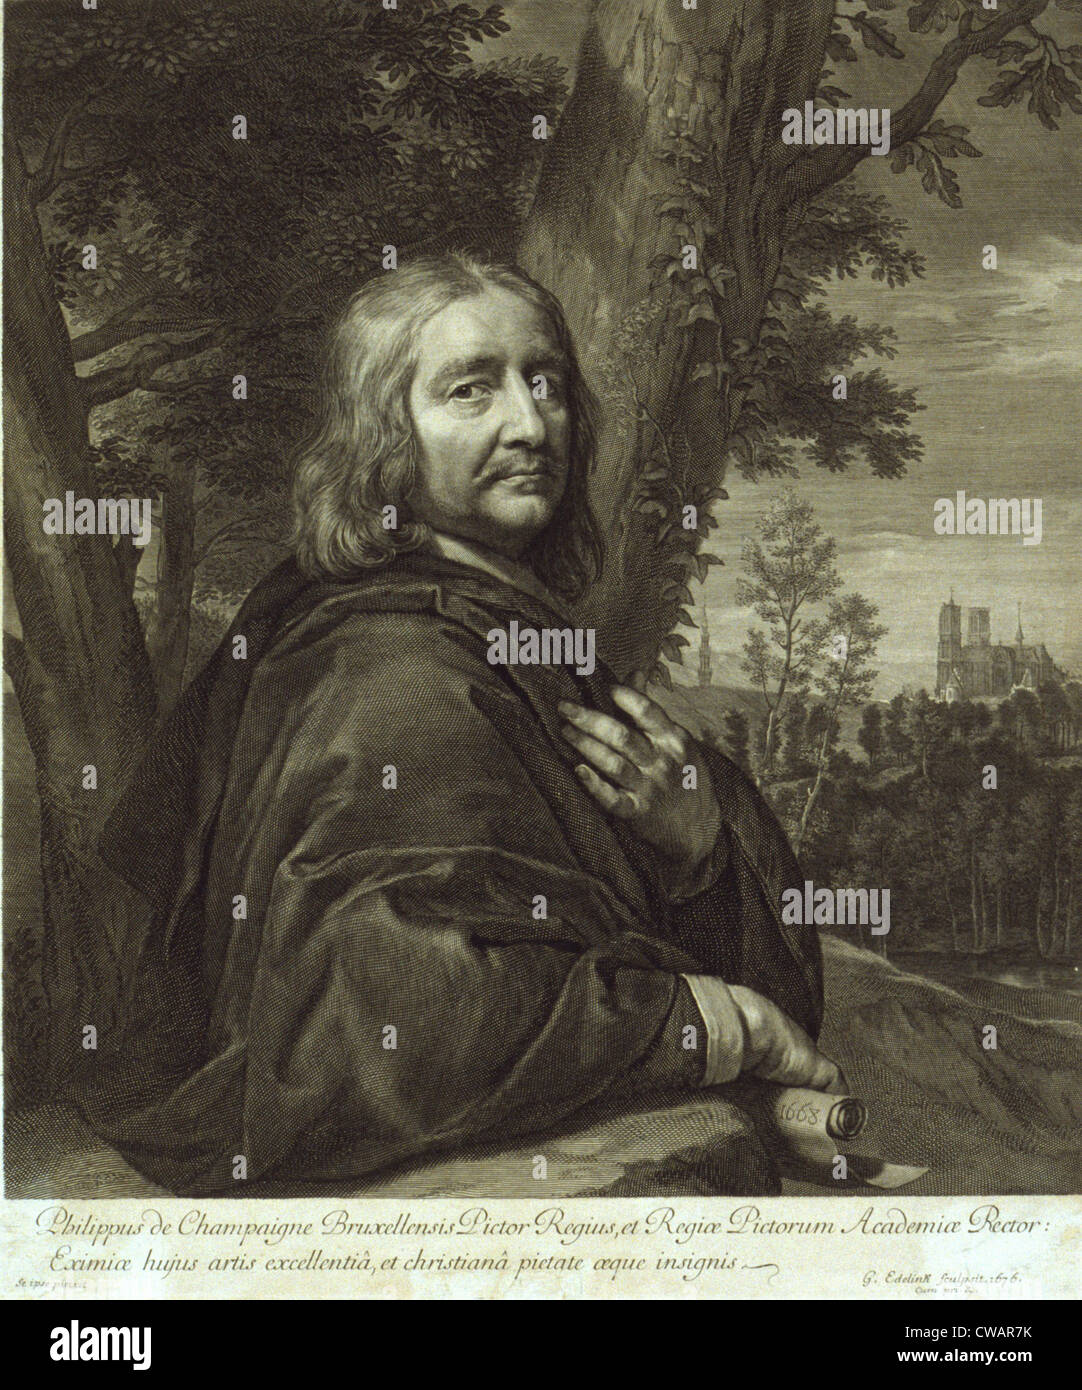 Philippe de Champaigne (1602-1674), French 17th century Baroque painter, based on his self-portrait of 1668.  Engraved - Stock Image